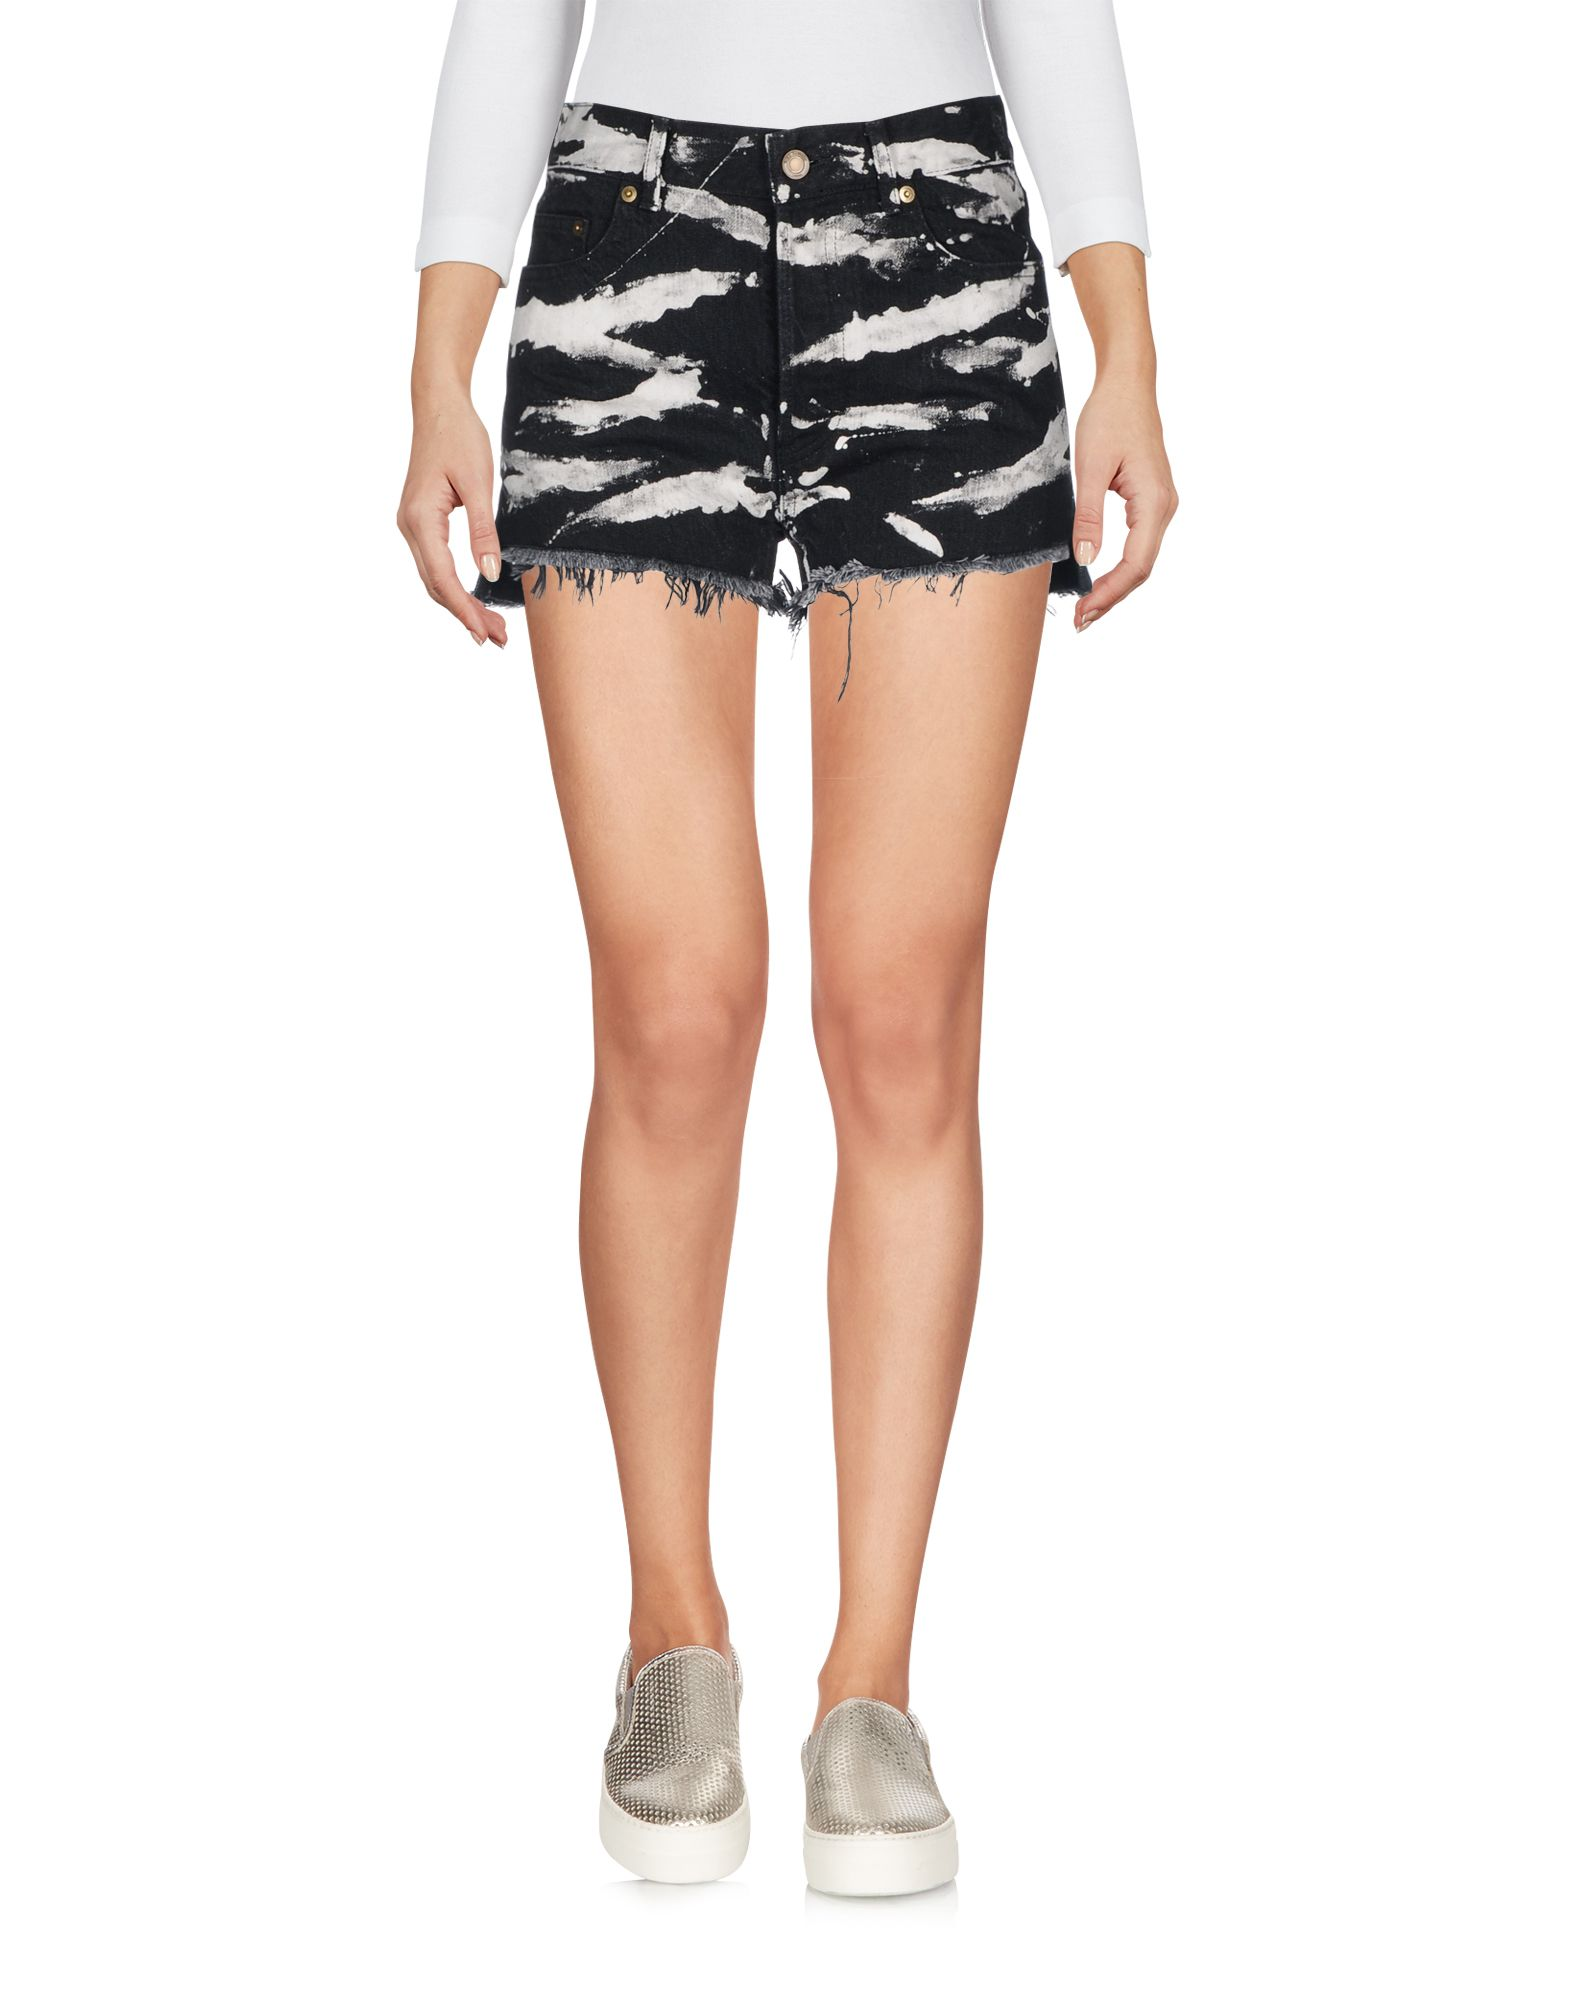 Shorts Jeans Saint Laurent Donna - Acquista online su SJqrEFc0Kk